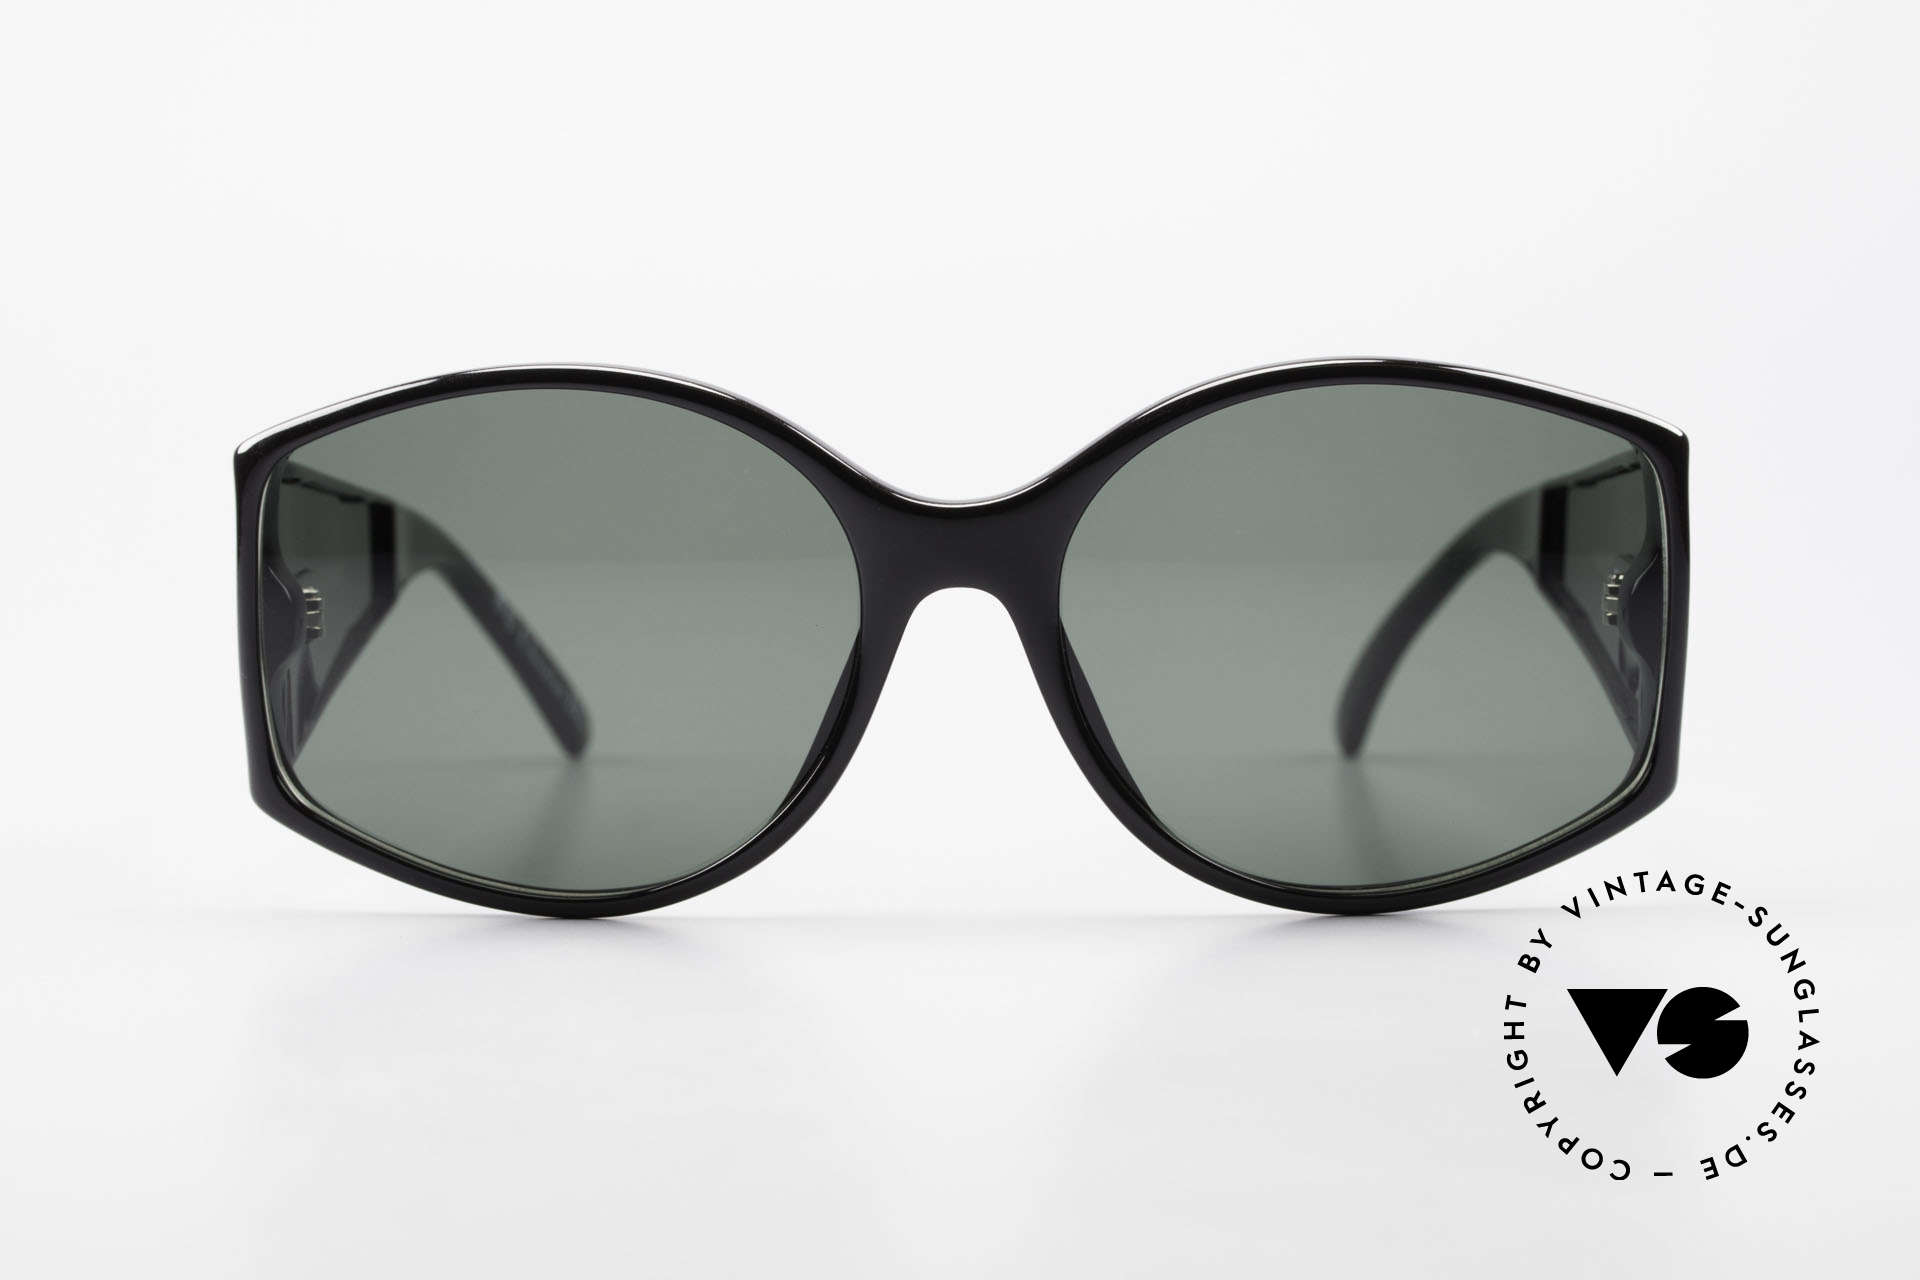 Christian Dior 2435 80's Designer Sunglasses Ladies, synthetic Optyl frame with ostentatious temples, Made for Women